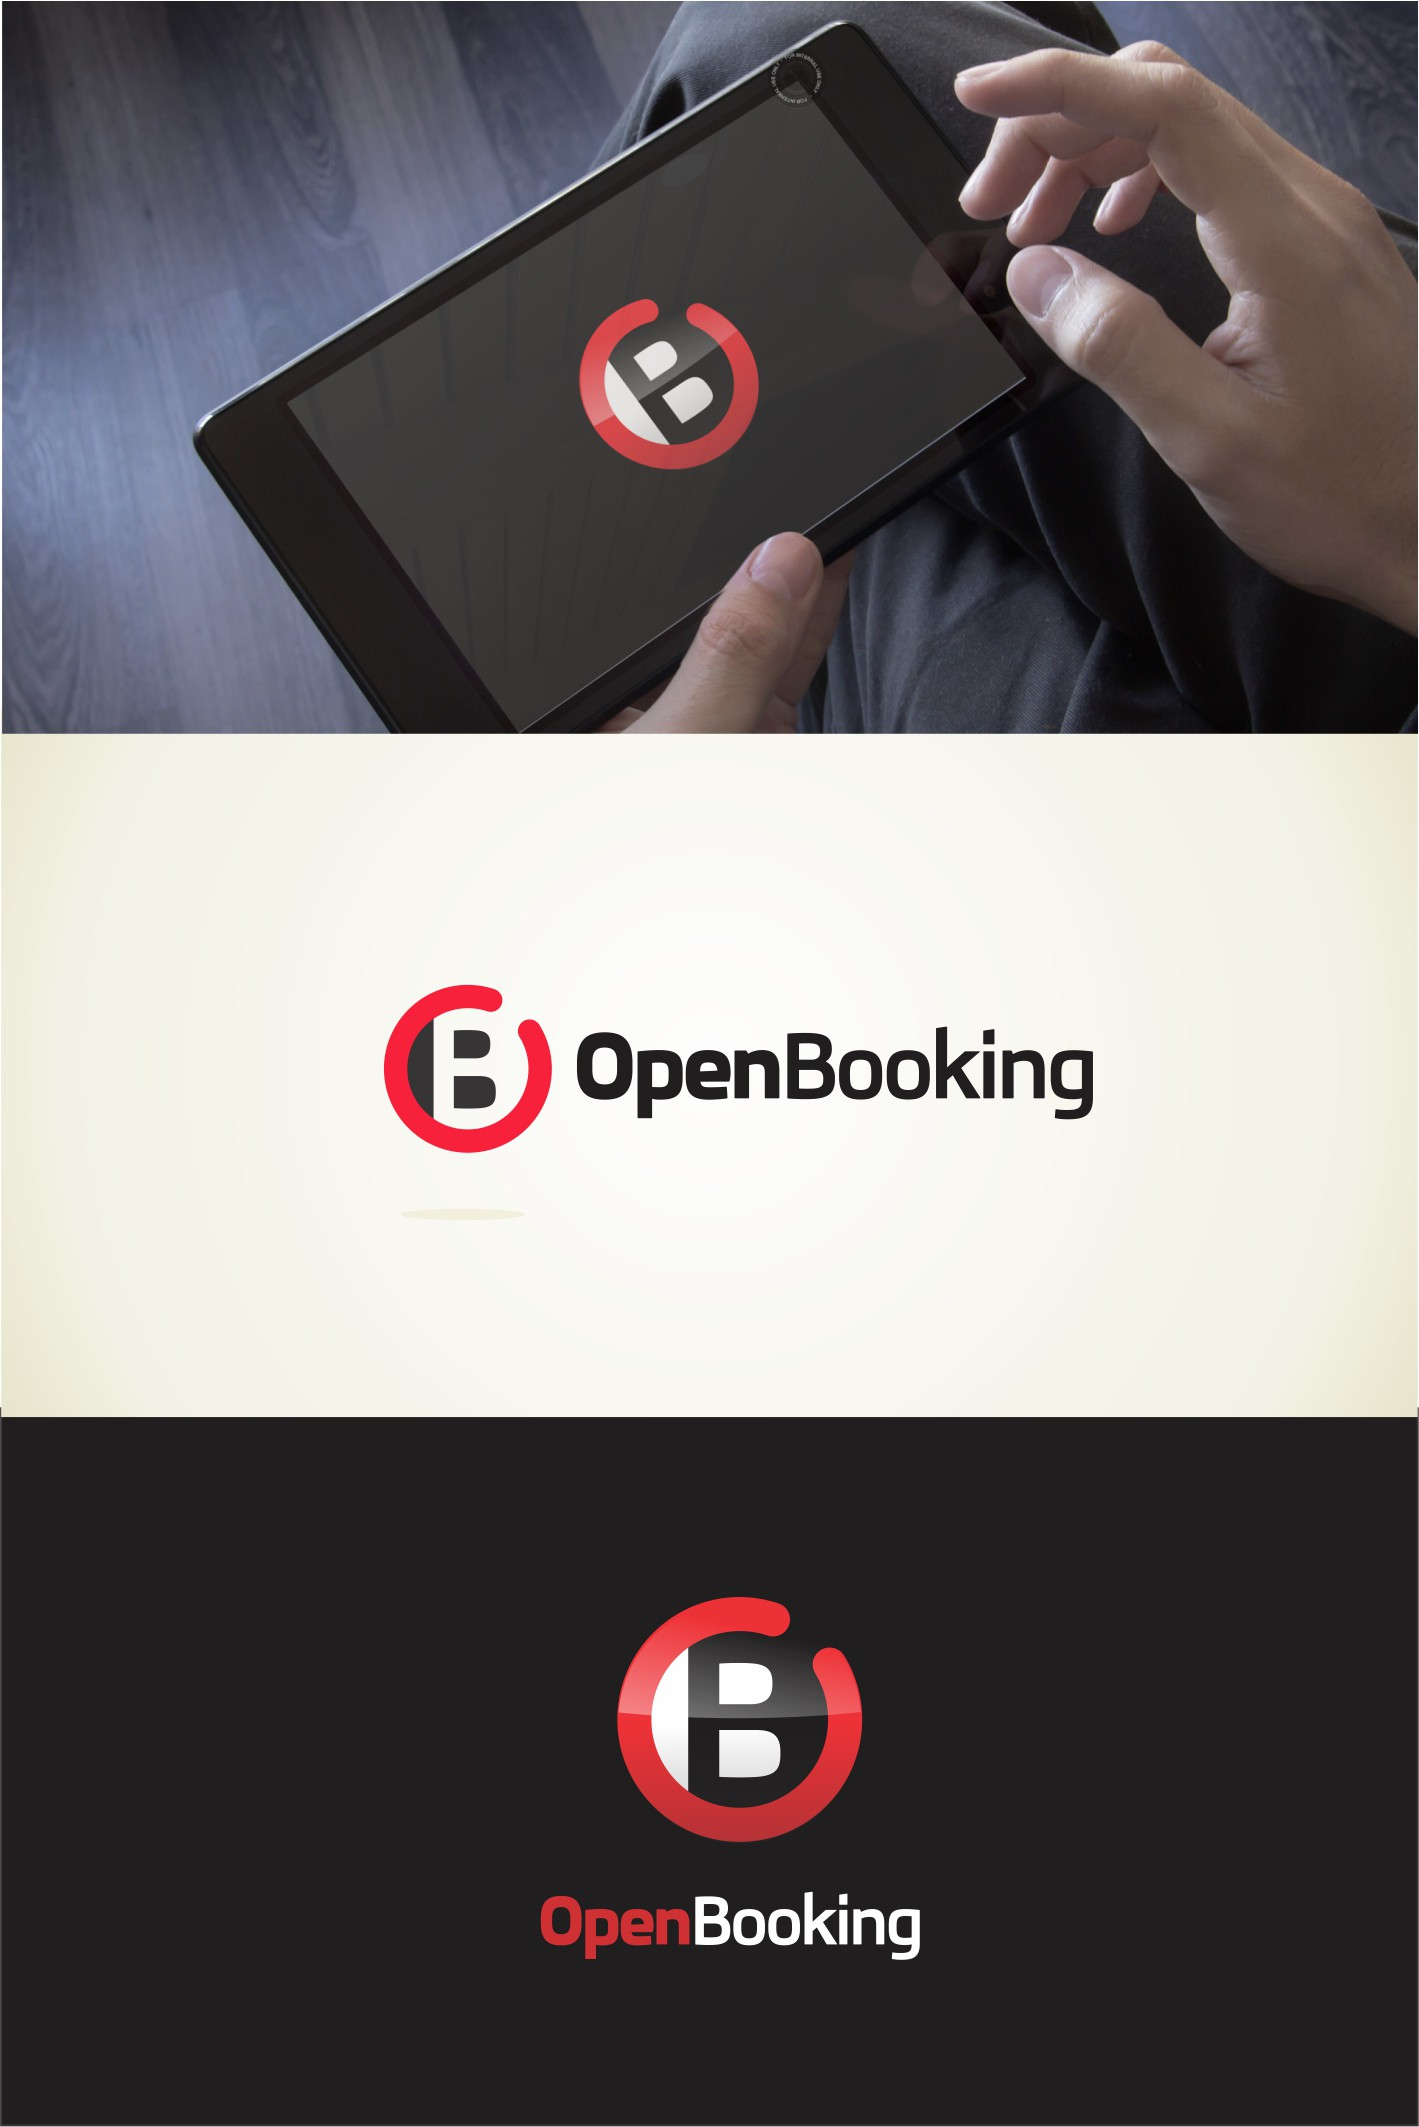 Create the winning logo for the OpenBooking software